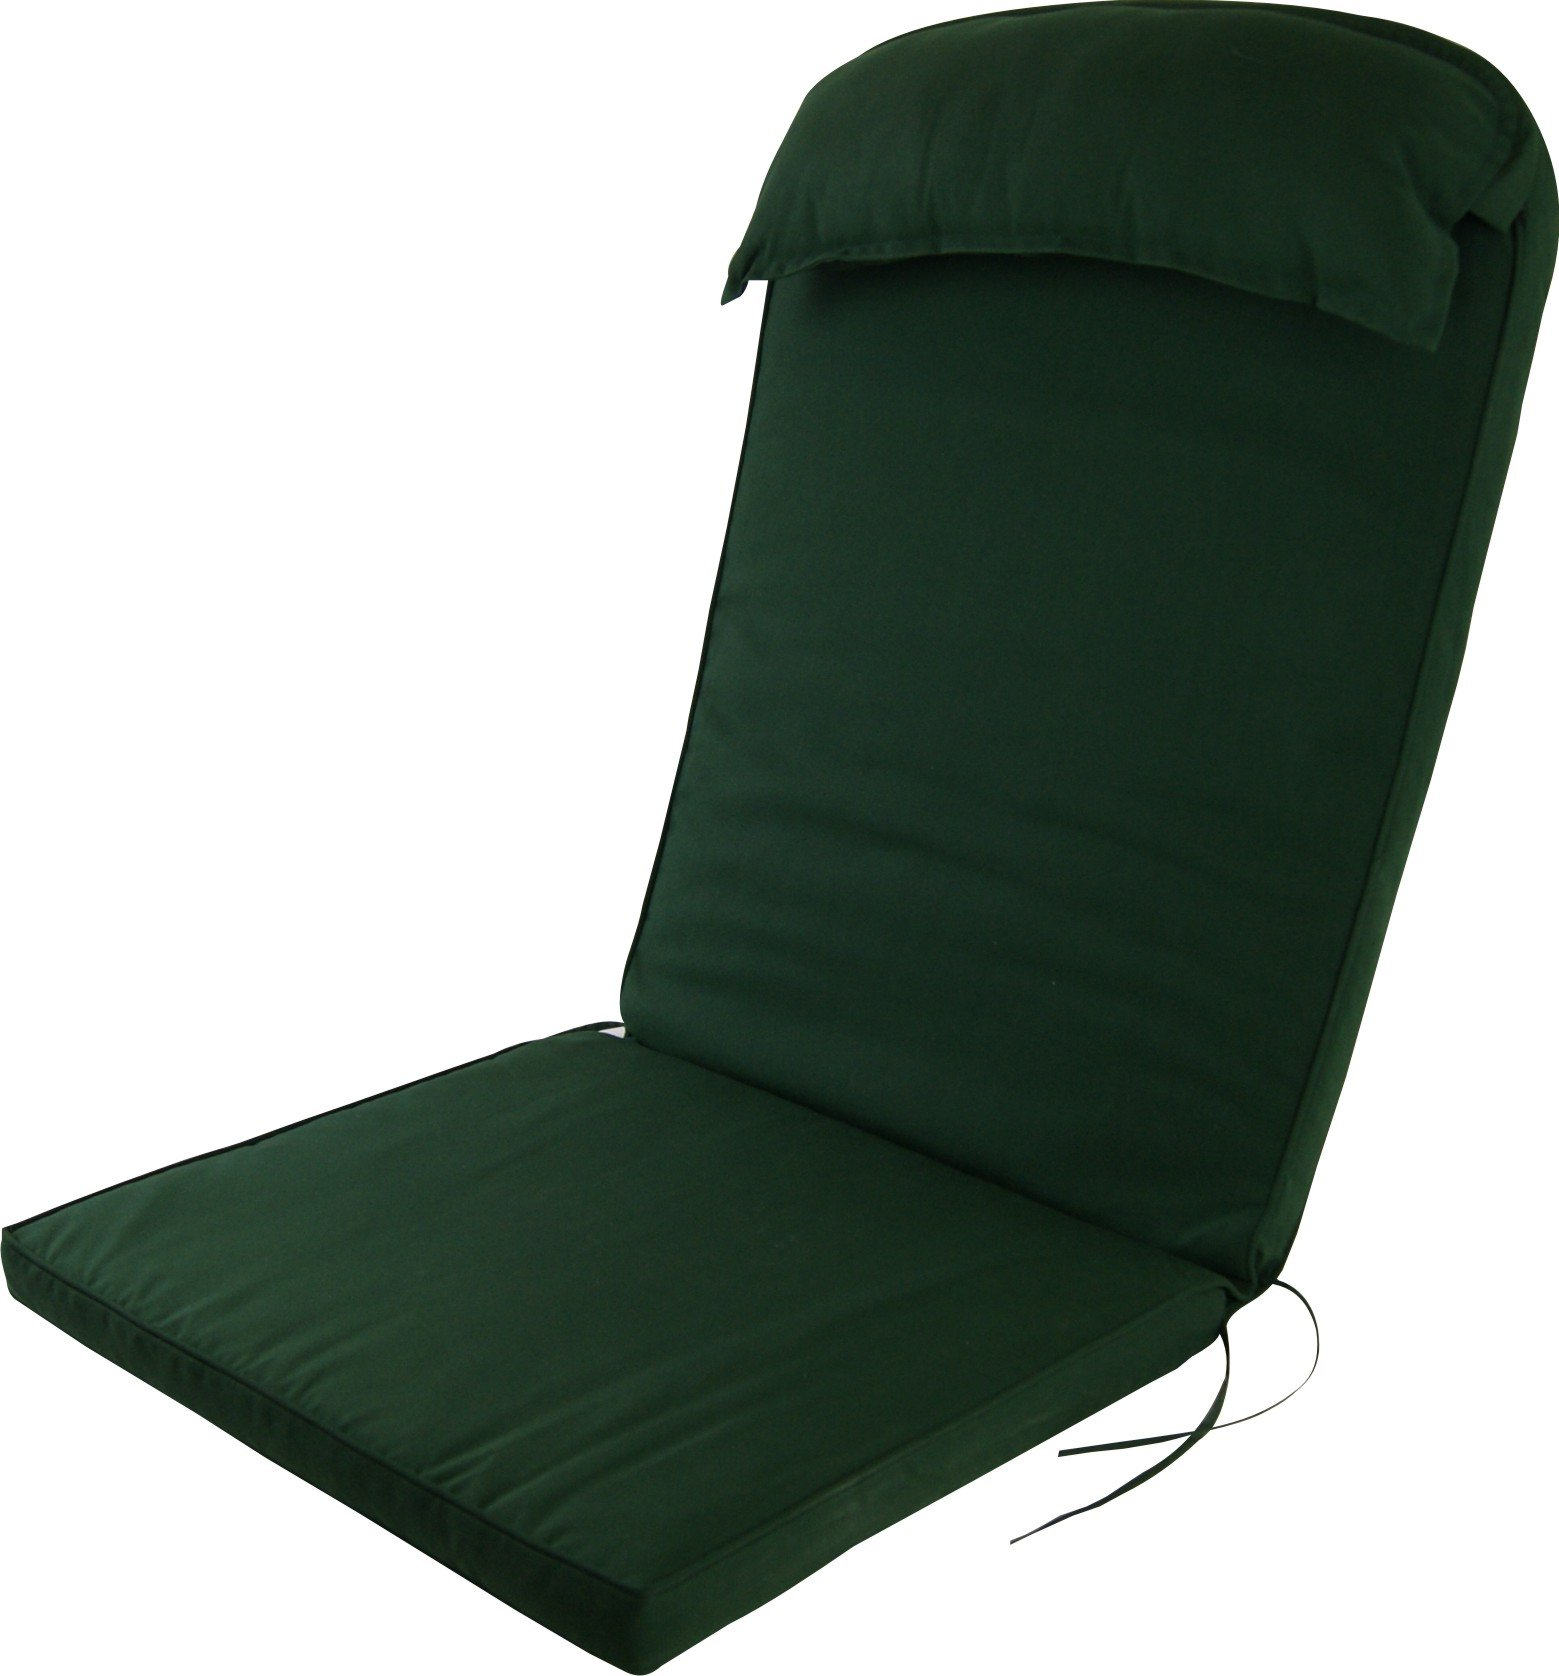 Plant Theatre Adirondack Chair Luxury High Back Cushion with Head Pillow